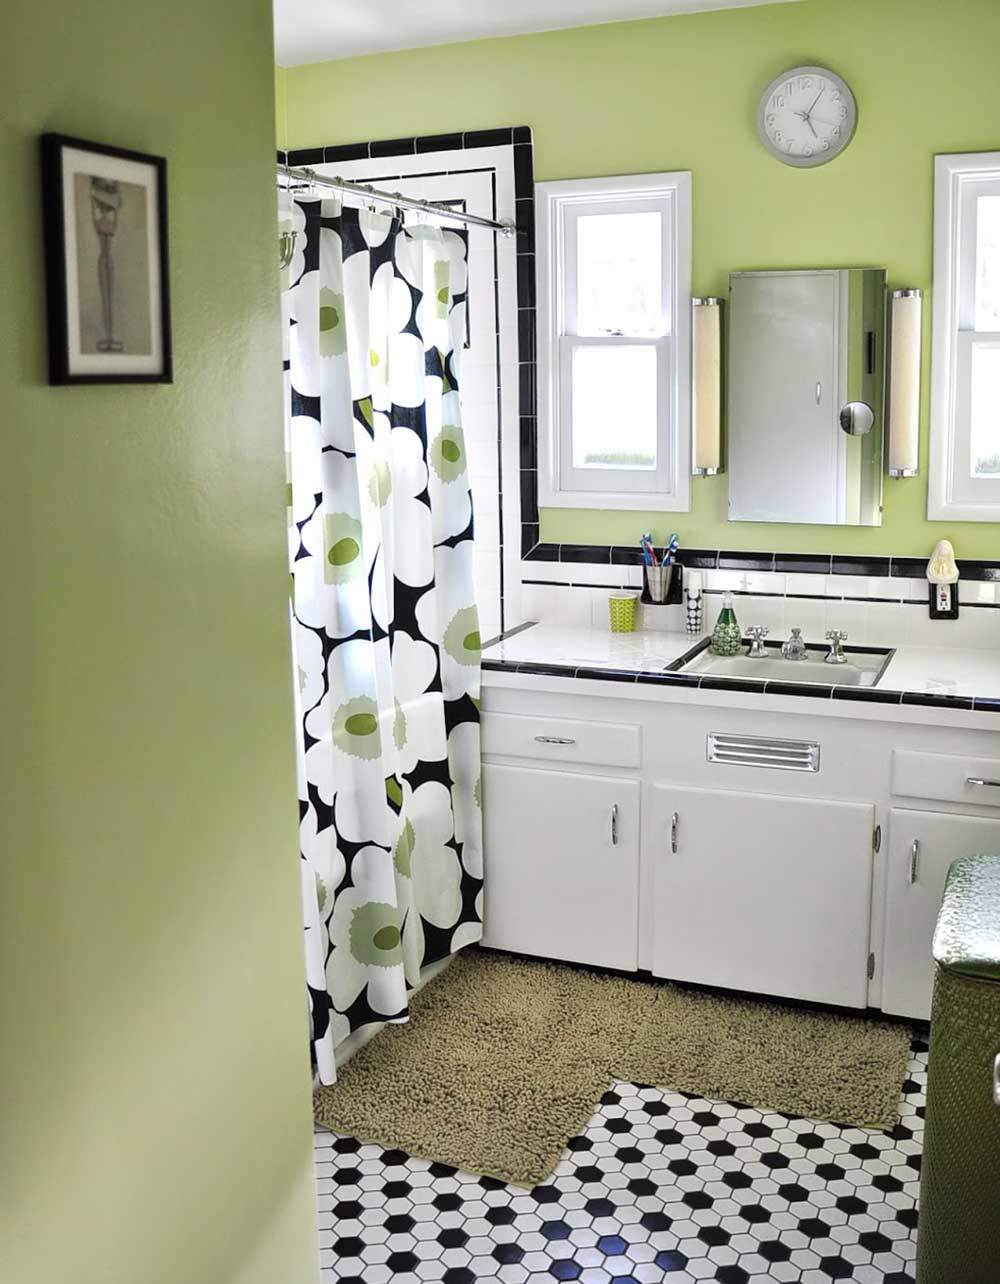 Dawn creates a classic black and white tile bathroom ...